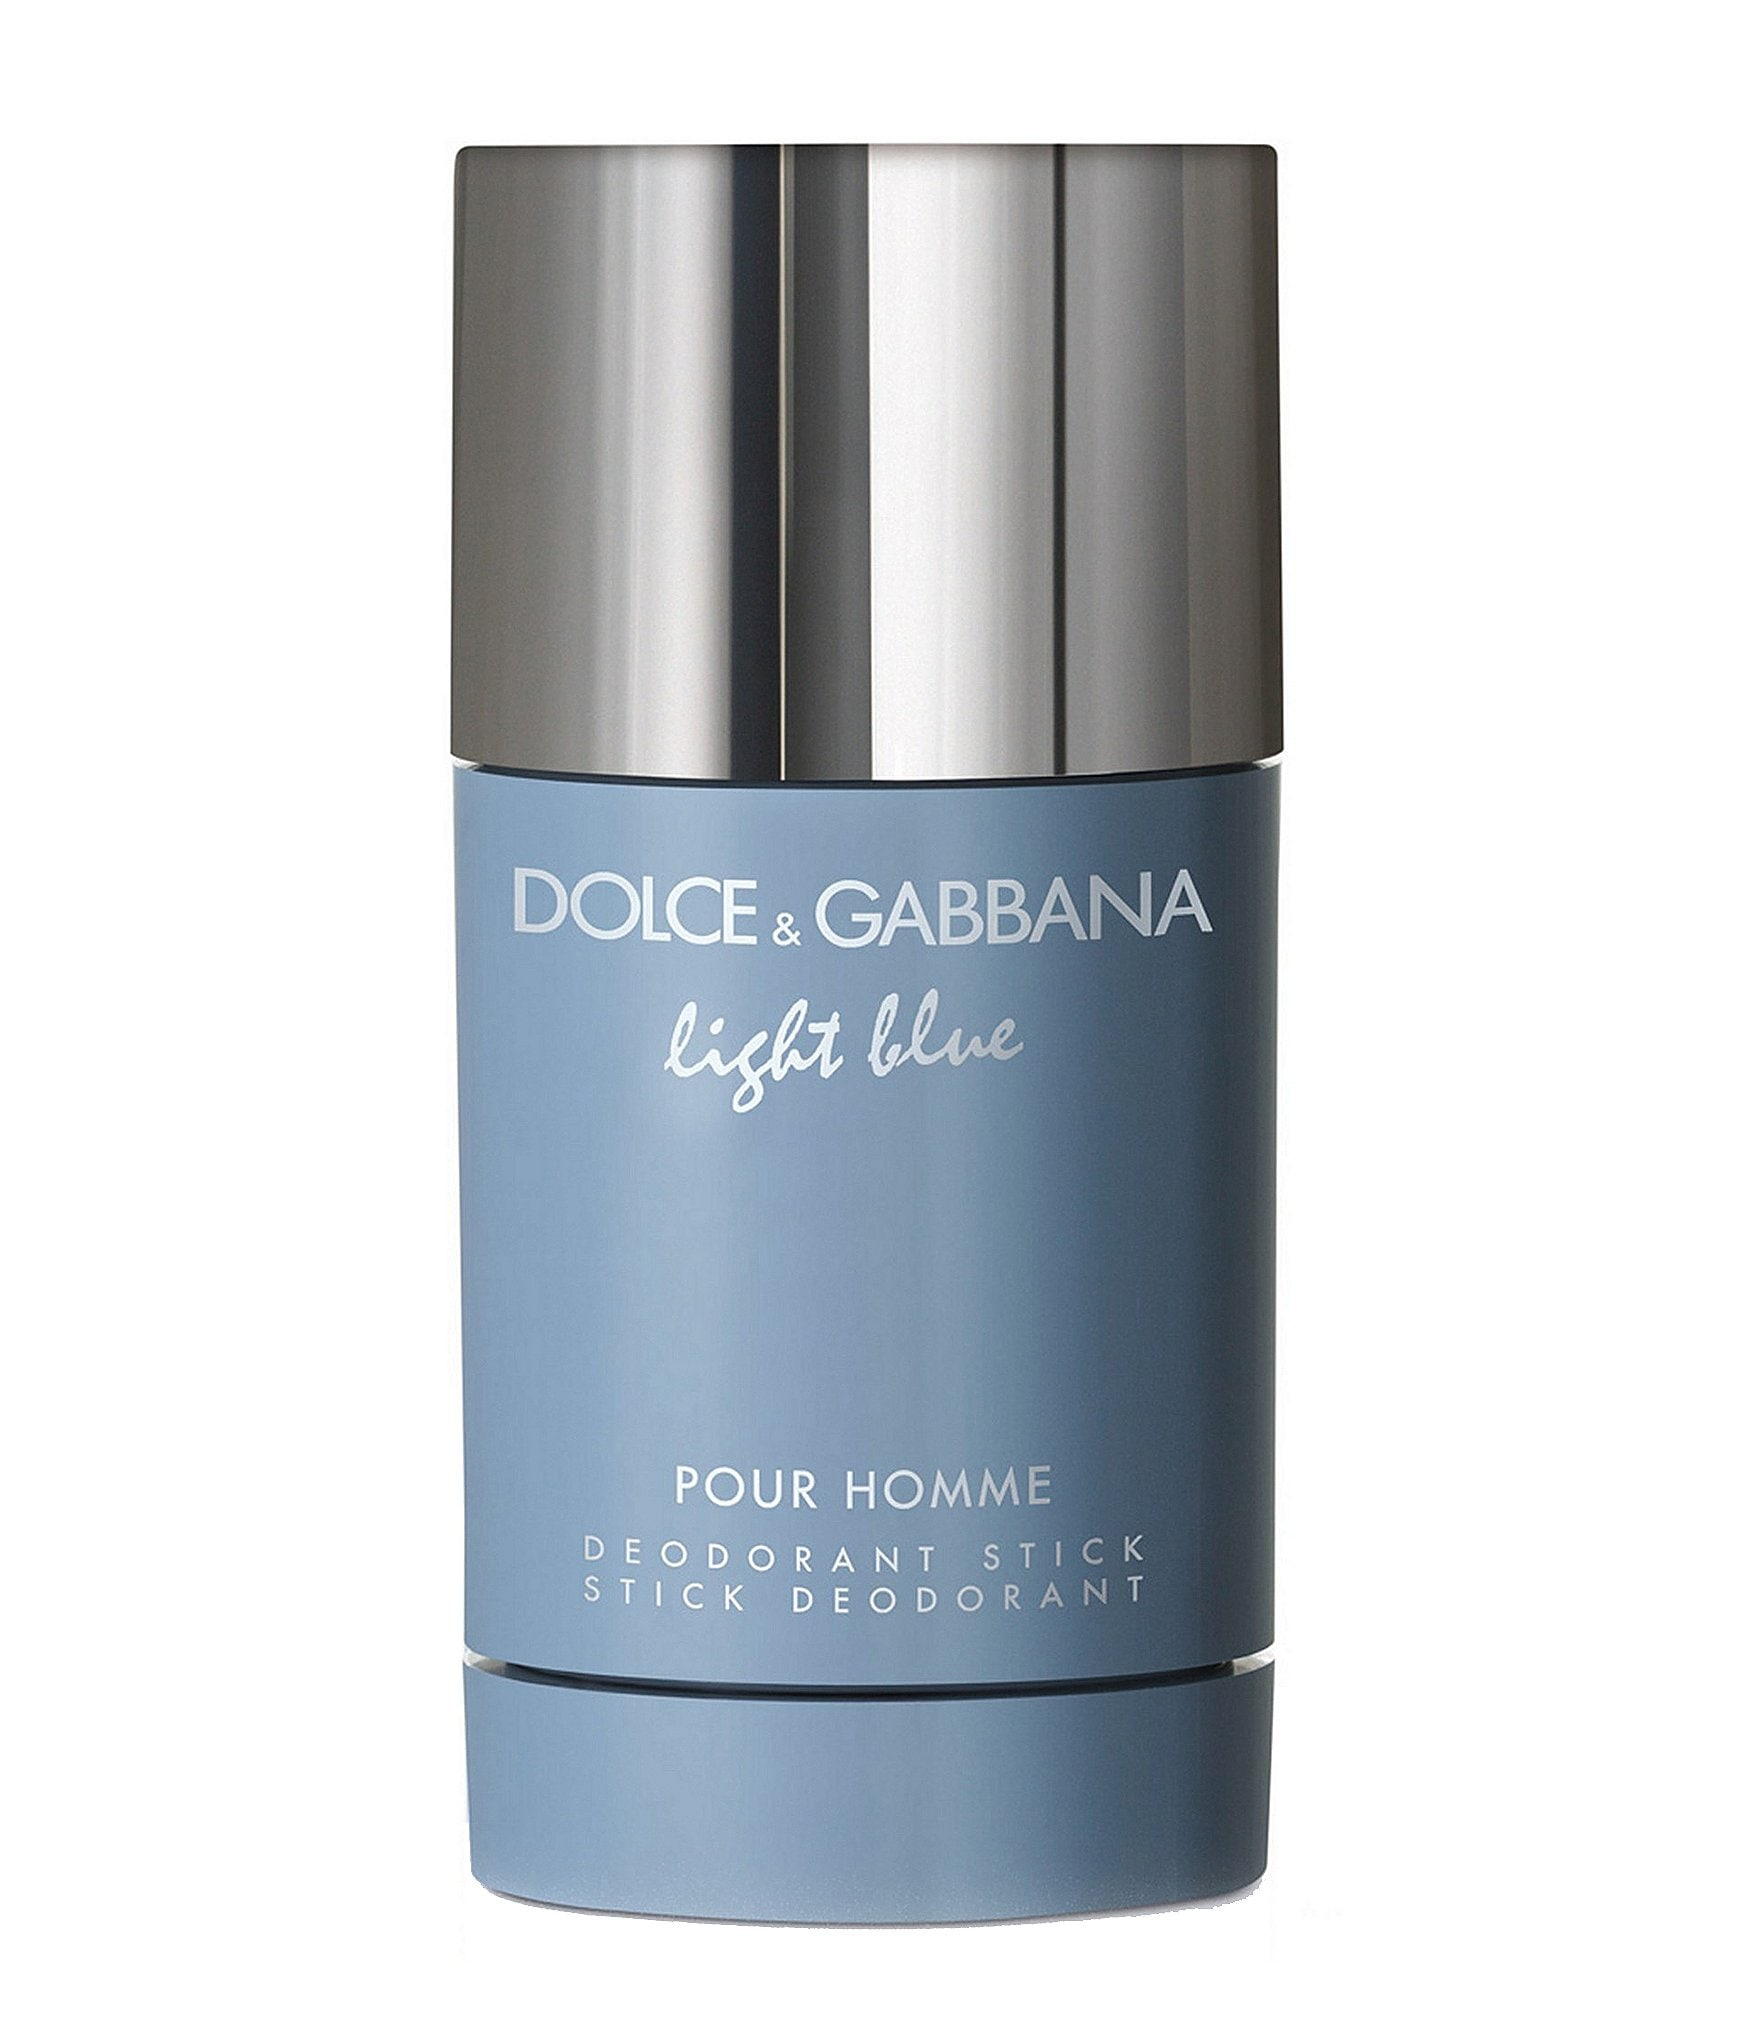 dolce gabbana light blue pour homme deodorant dillards. Black Bedroom Furniture Sets. Home Design Ideas